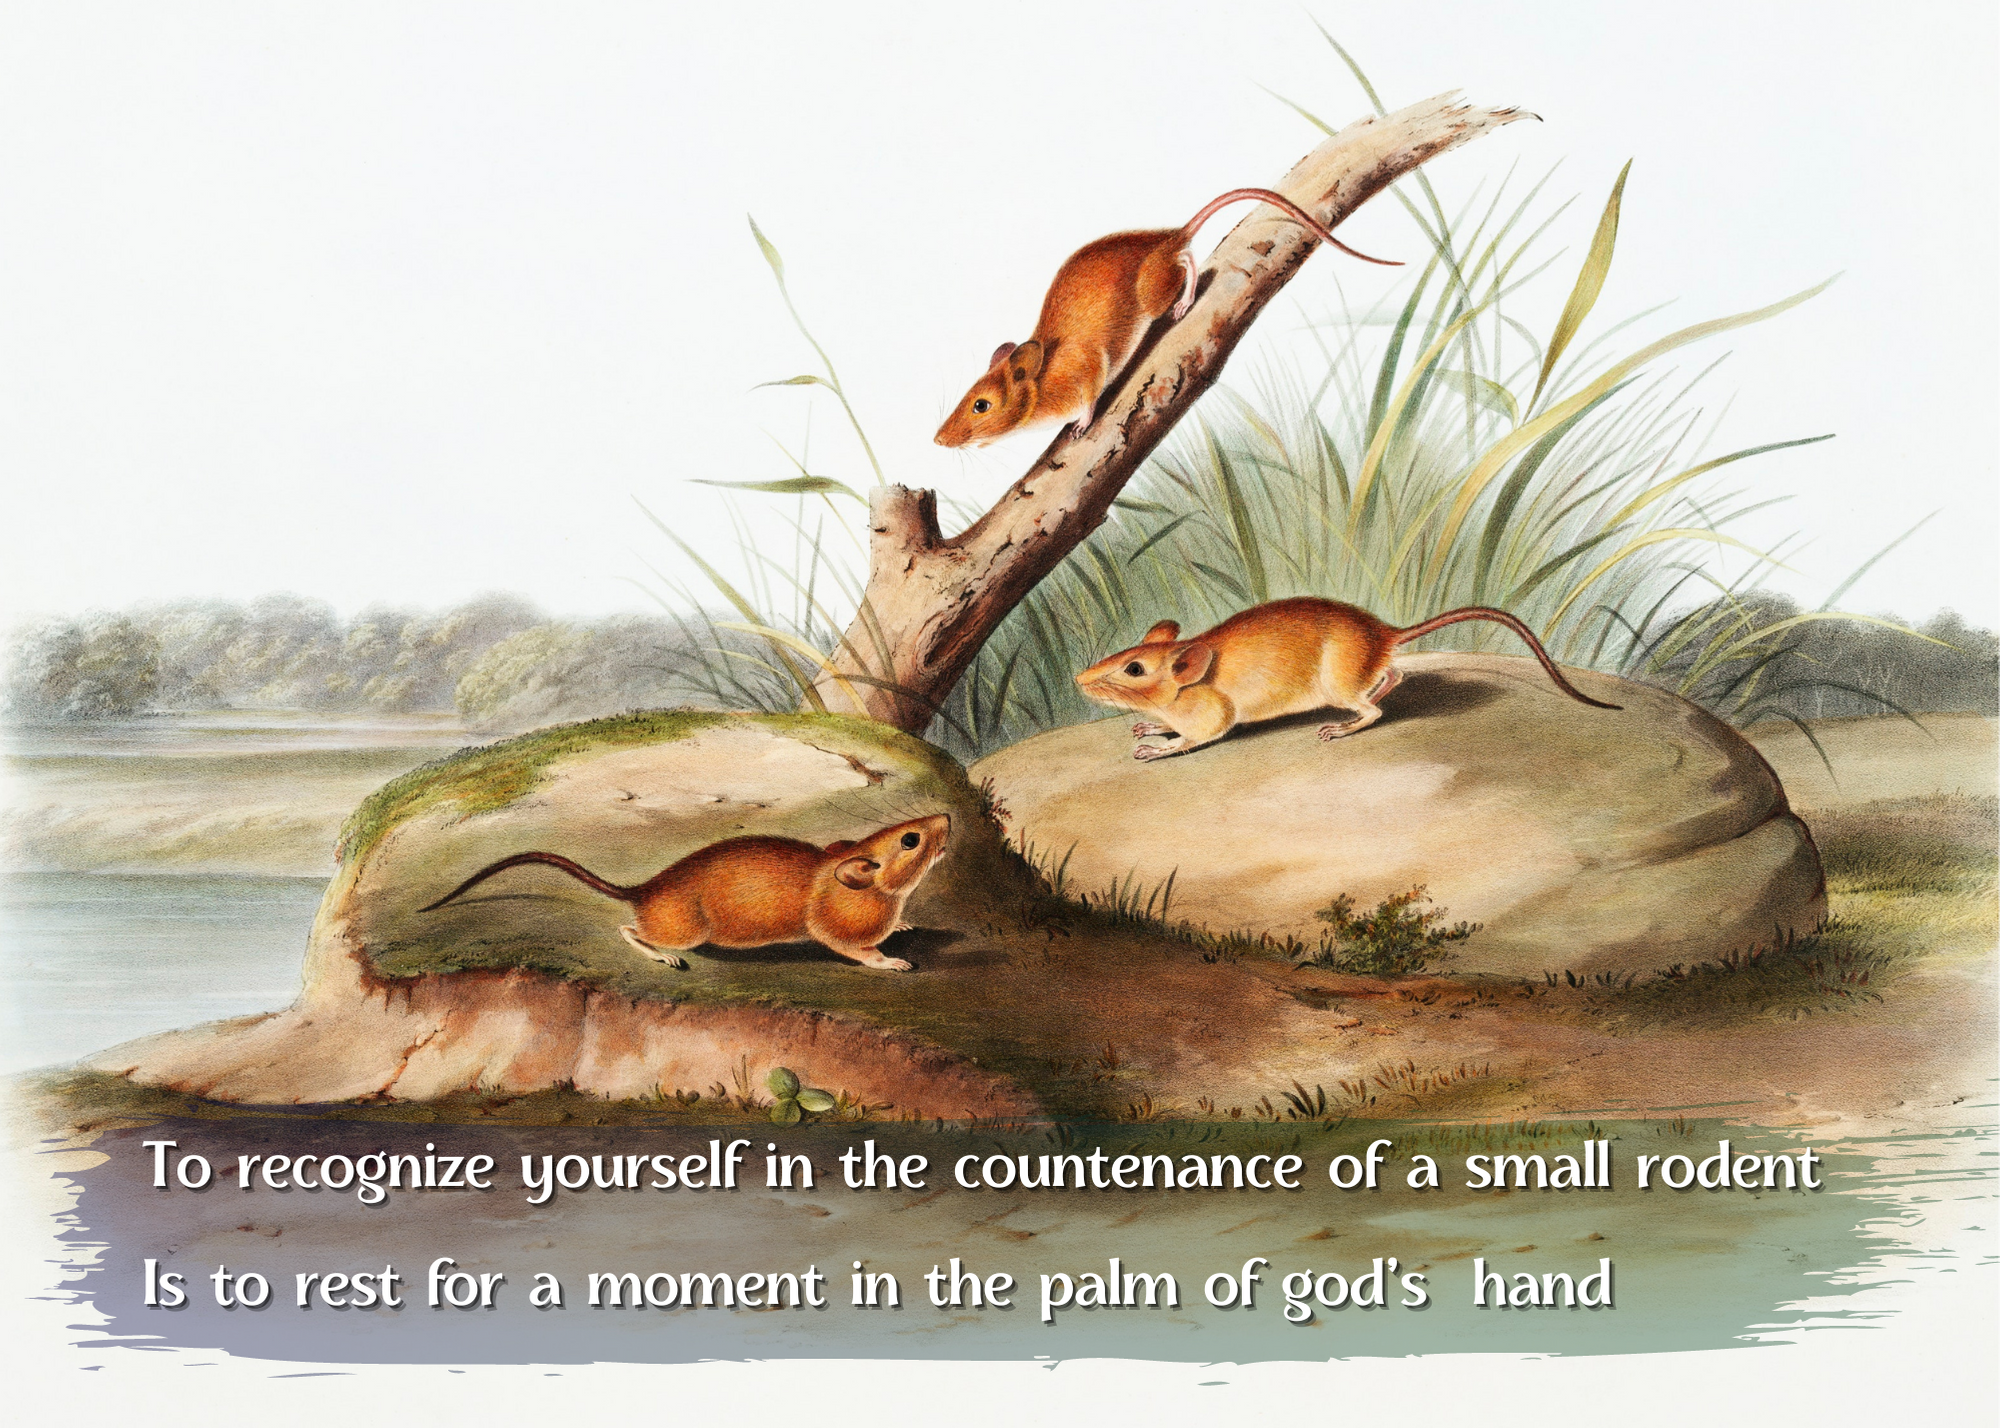 A classic, richly colored illustration of mice surrounding a small branch next to a lake with the text of the aphorism below.